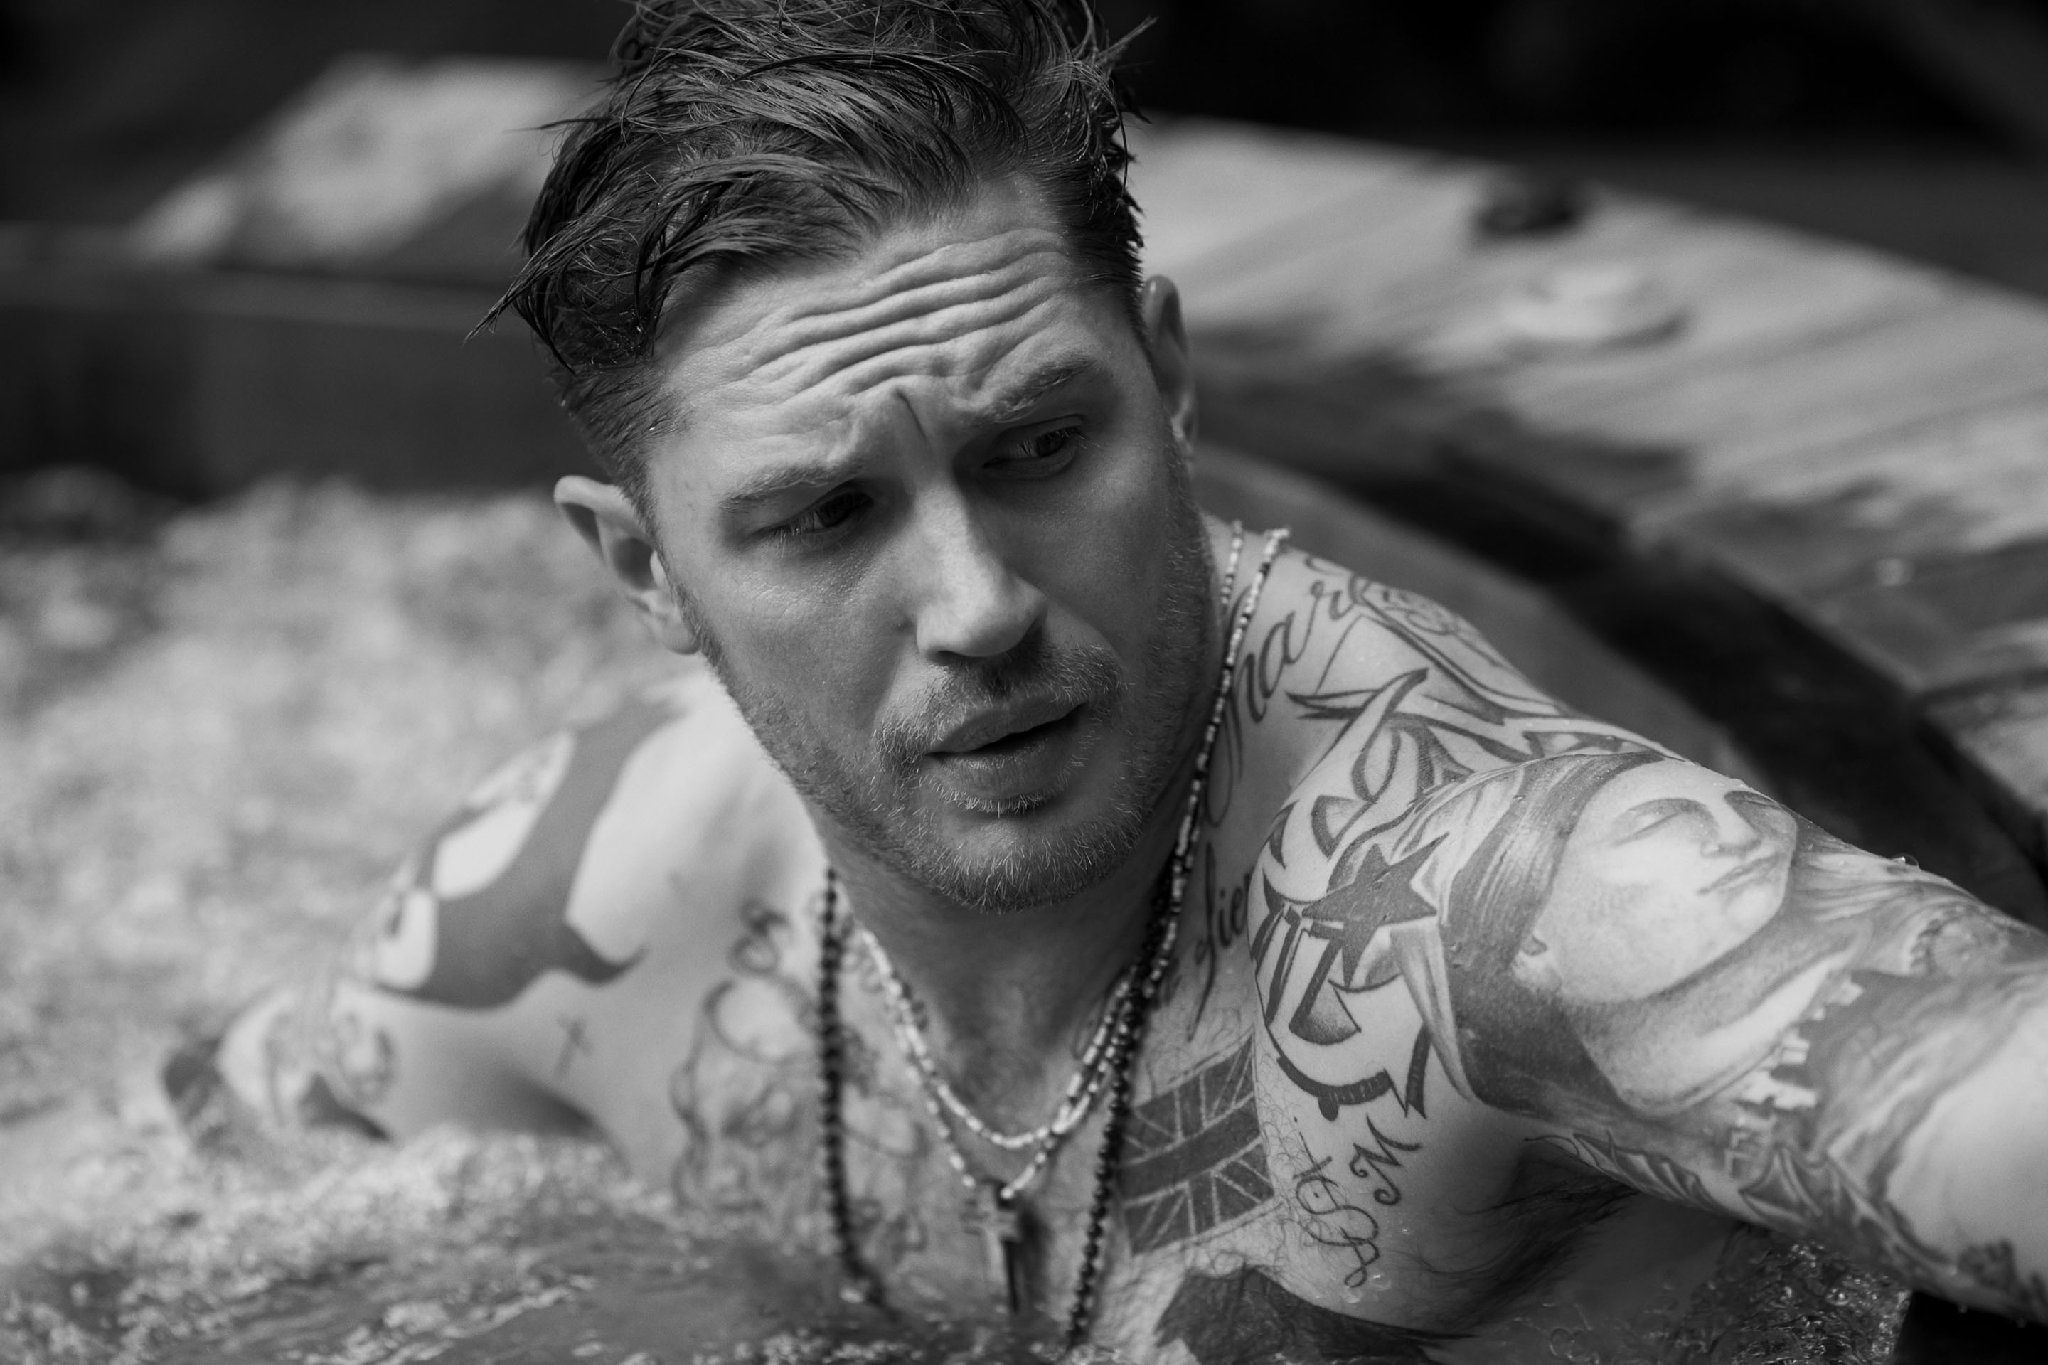 tom-hardy-opens-up-about-why-he-quit-suicide-squad-that-s-his-not-thrilled-face-presum-390229.jpg